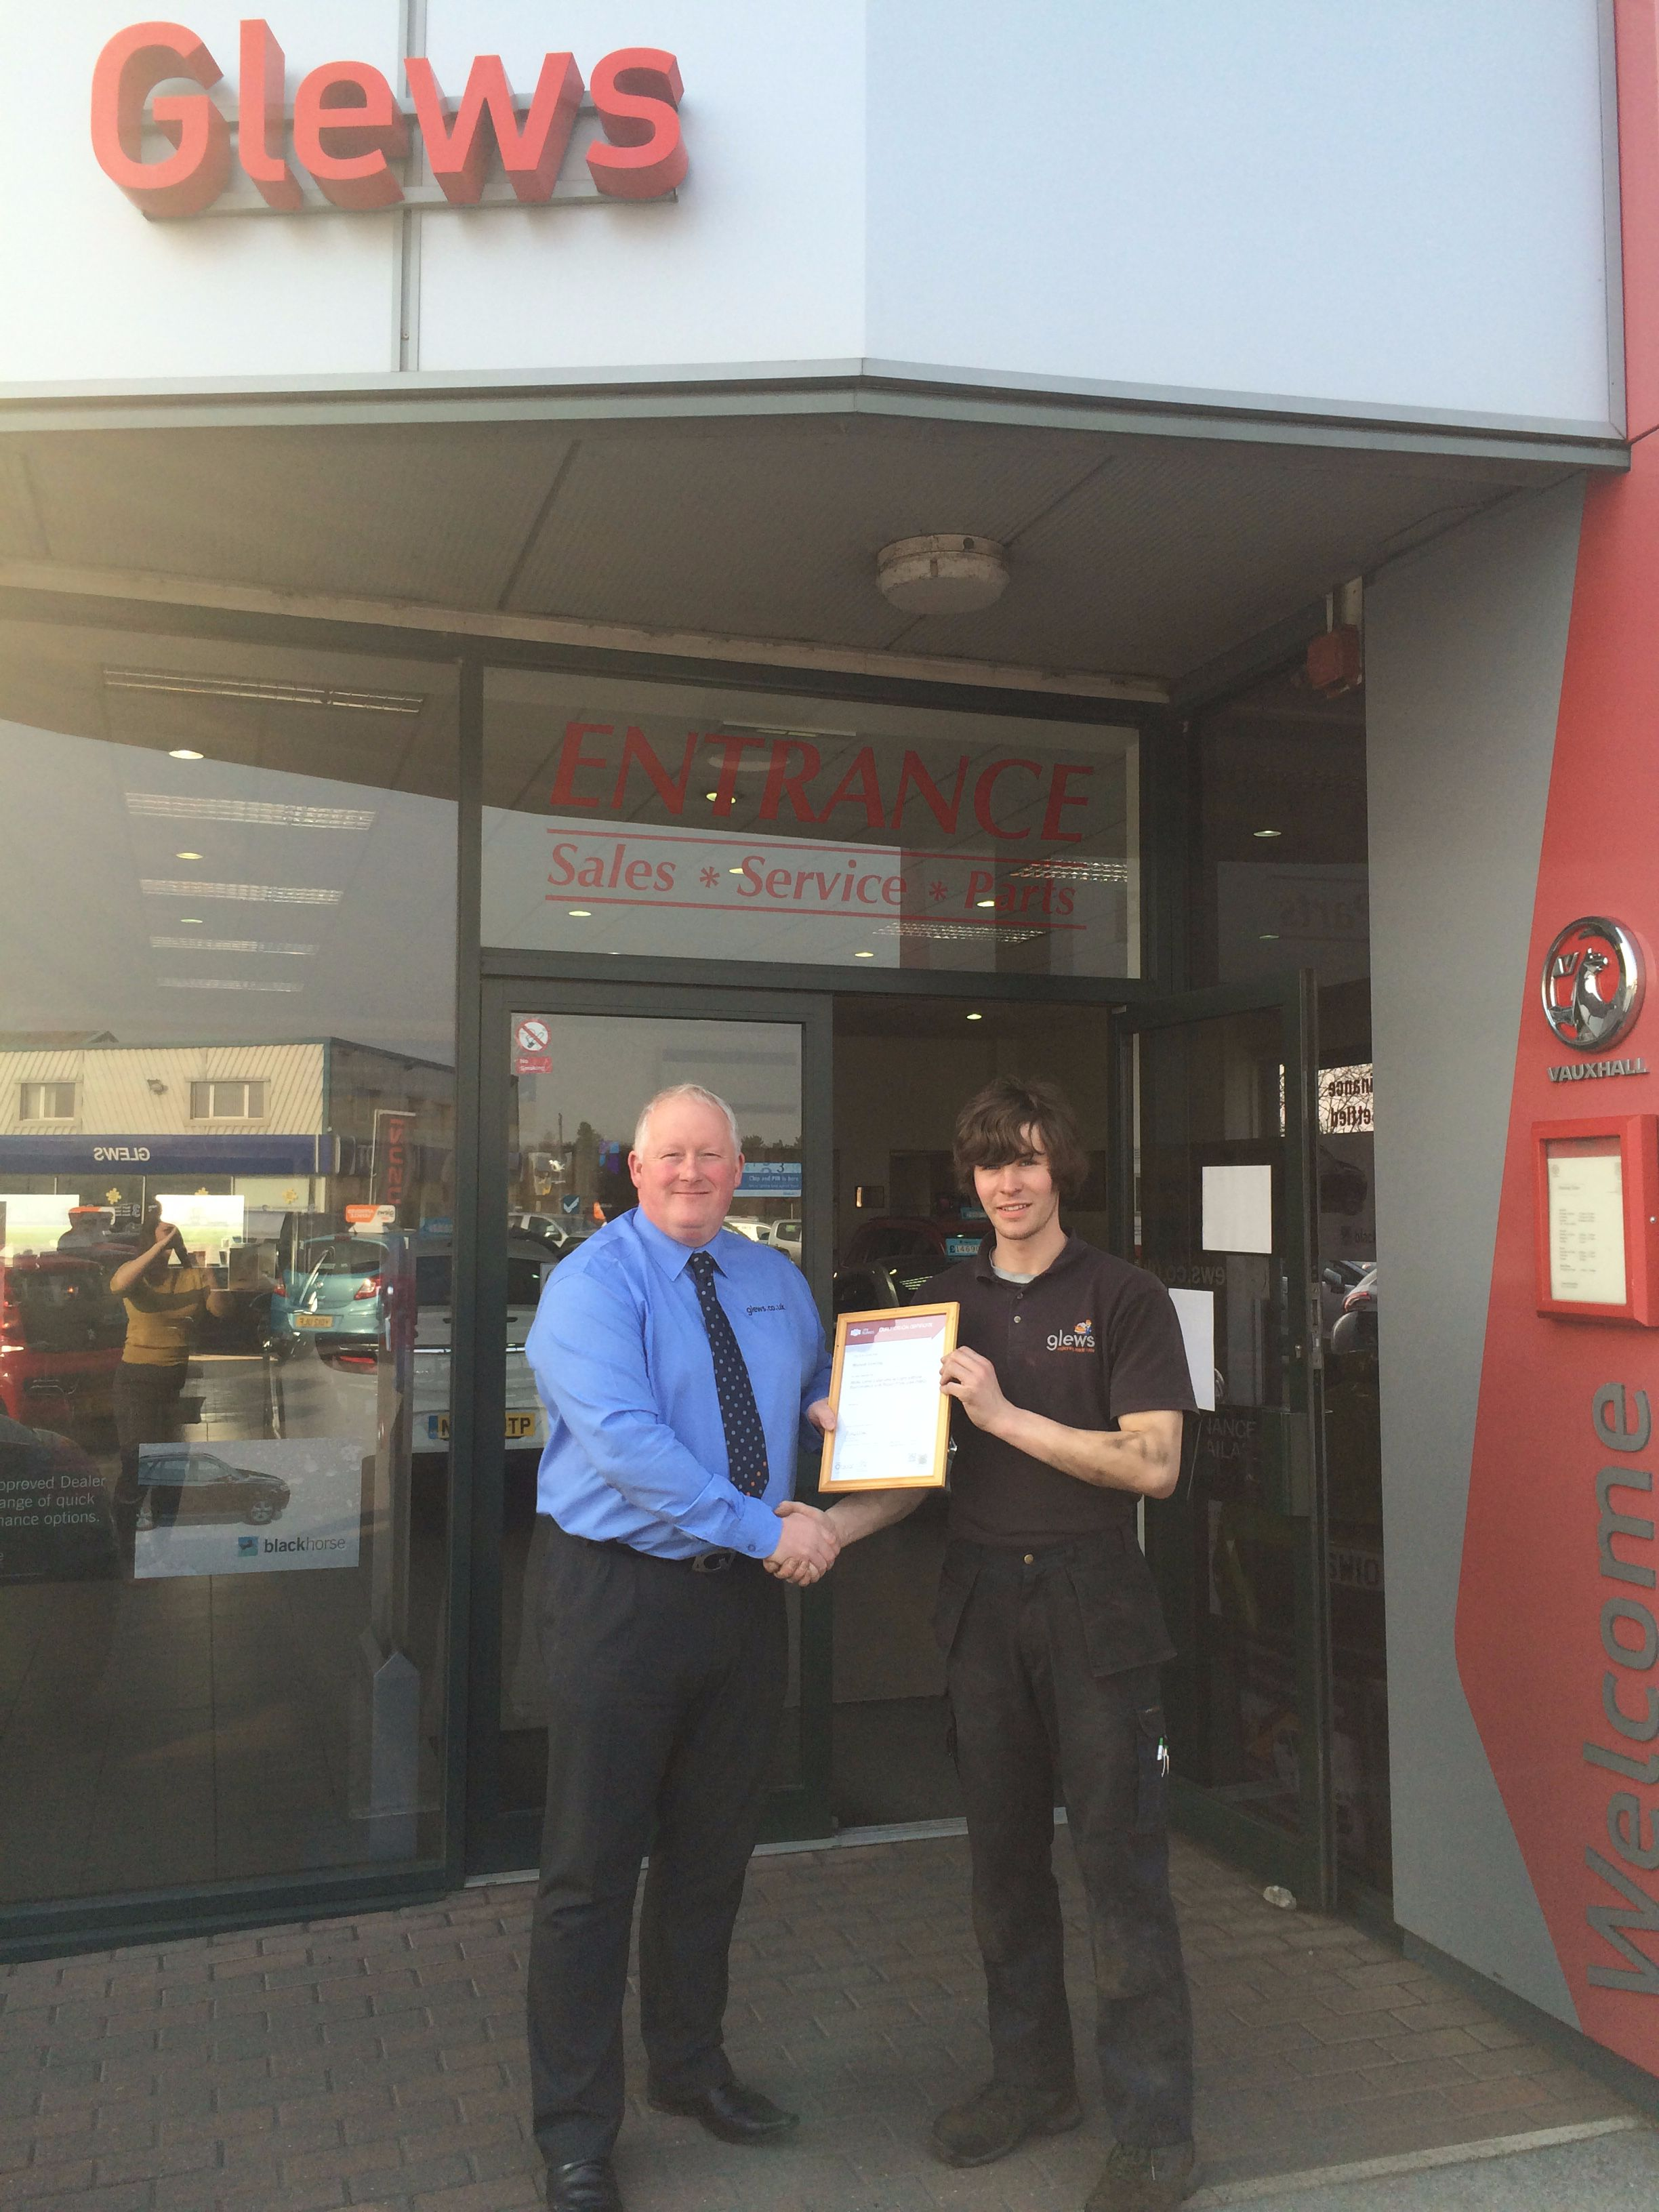 Newly qualified technician at Glews